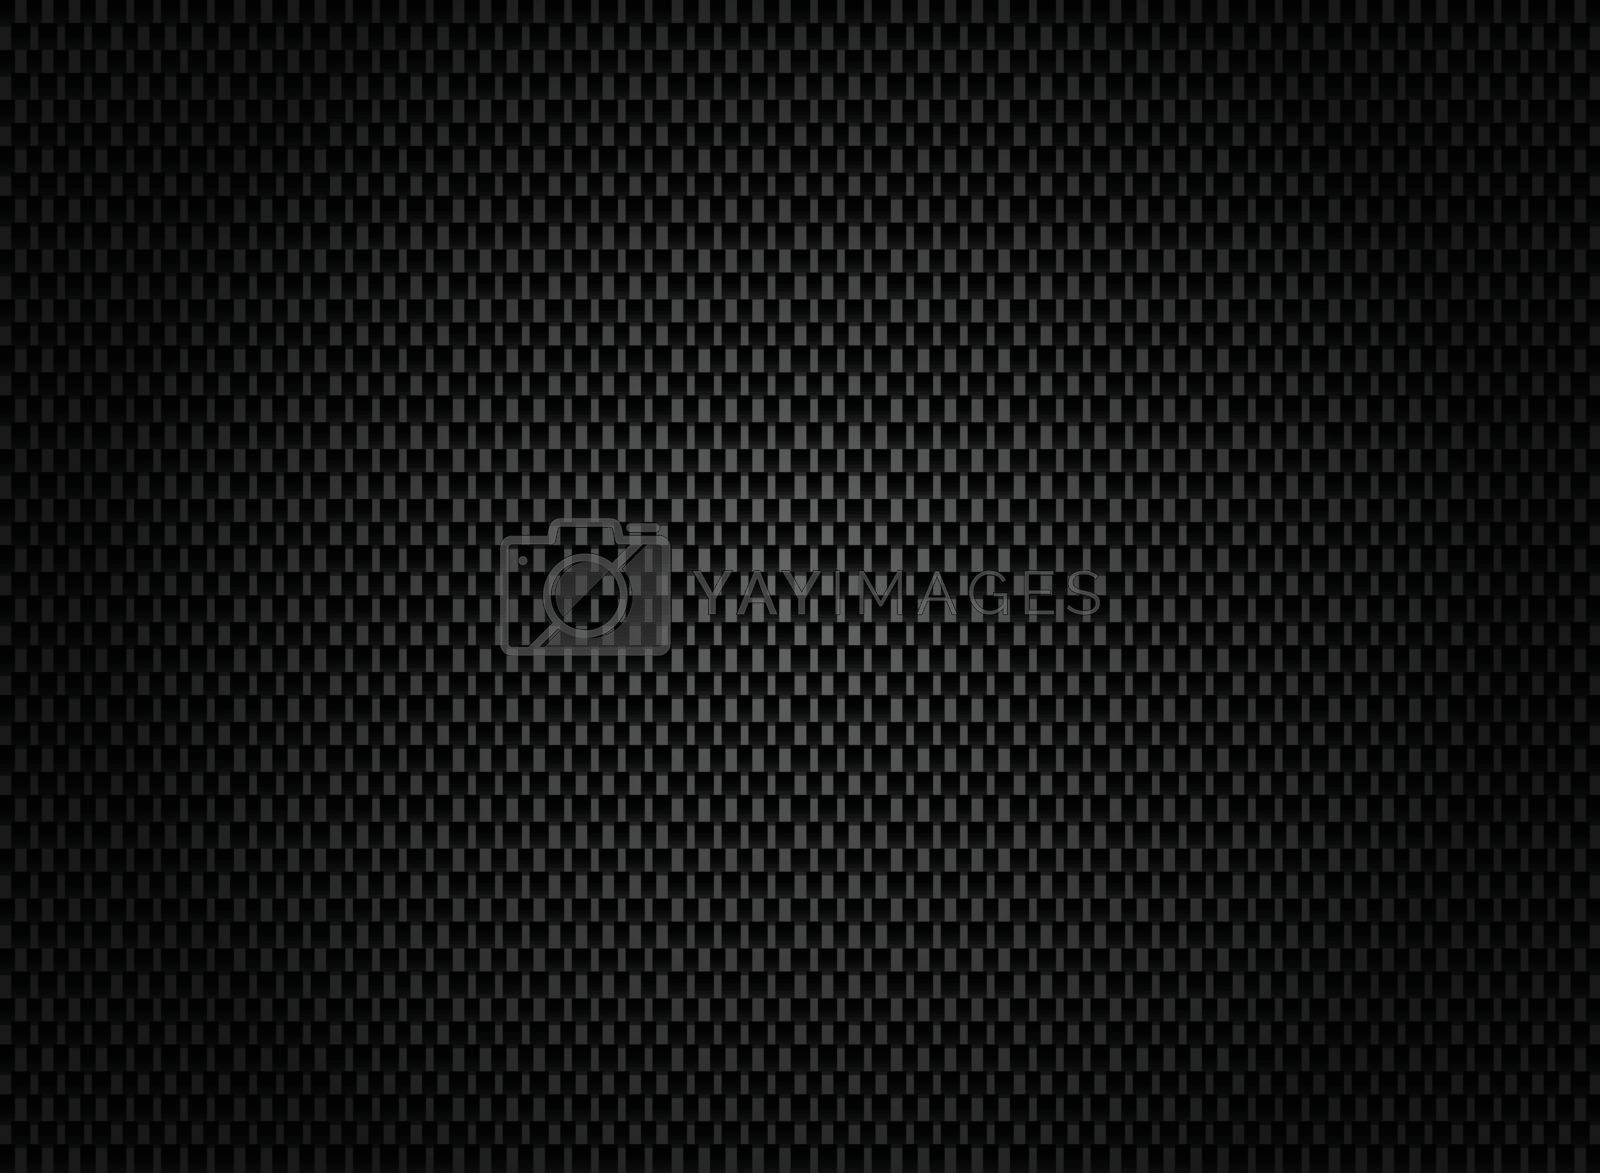 Abstract carbon fiber texture on dark background. by phochi